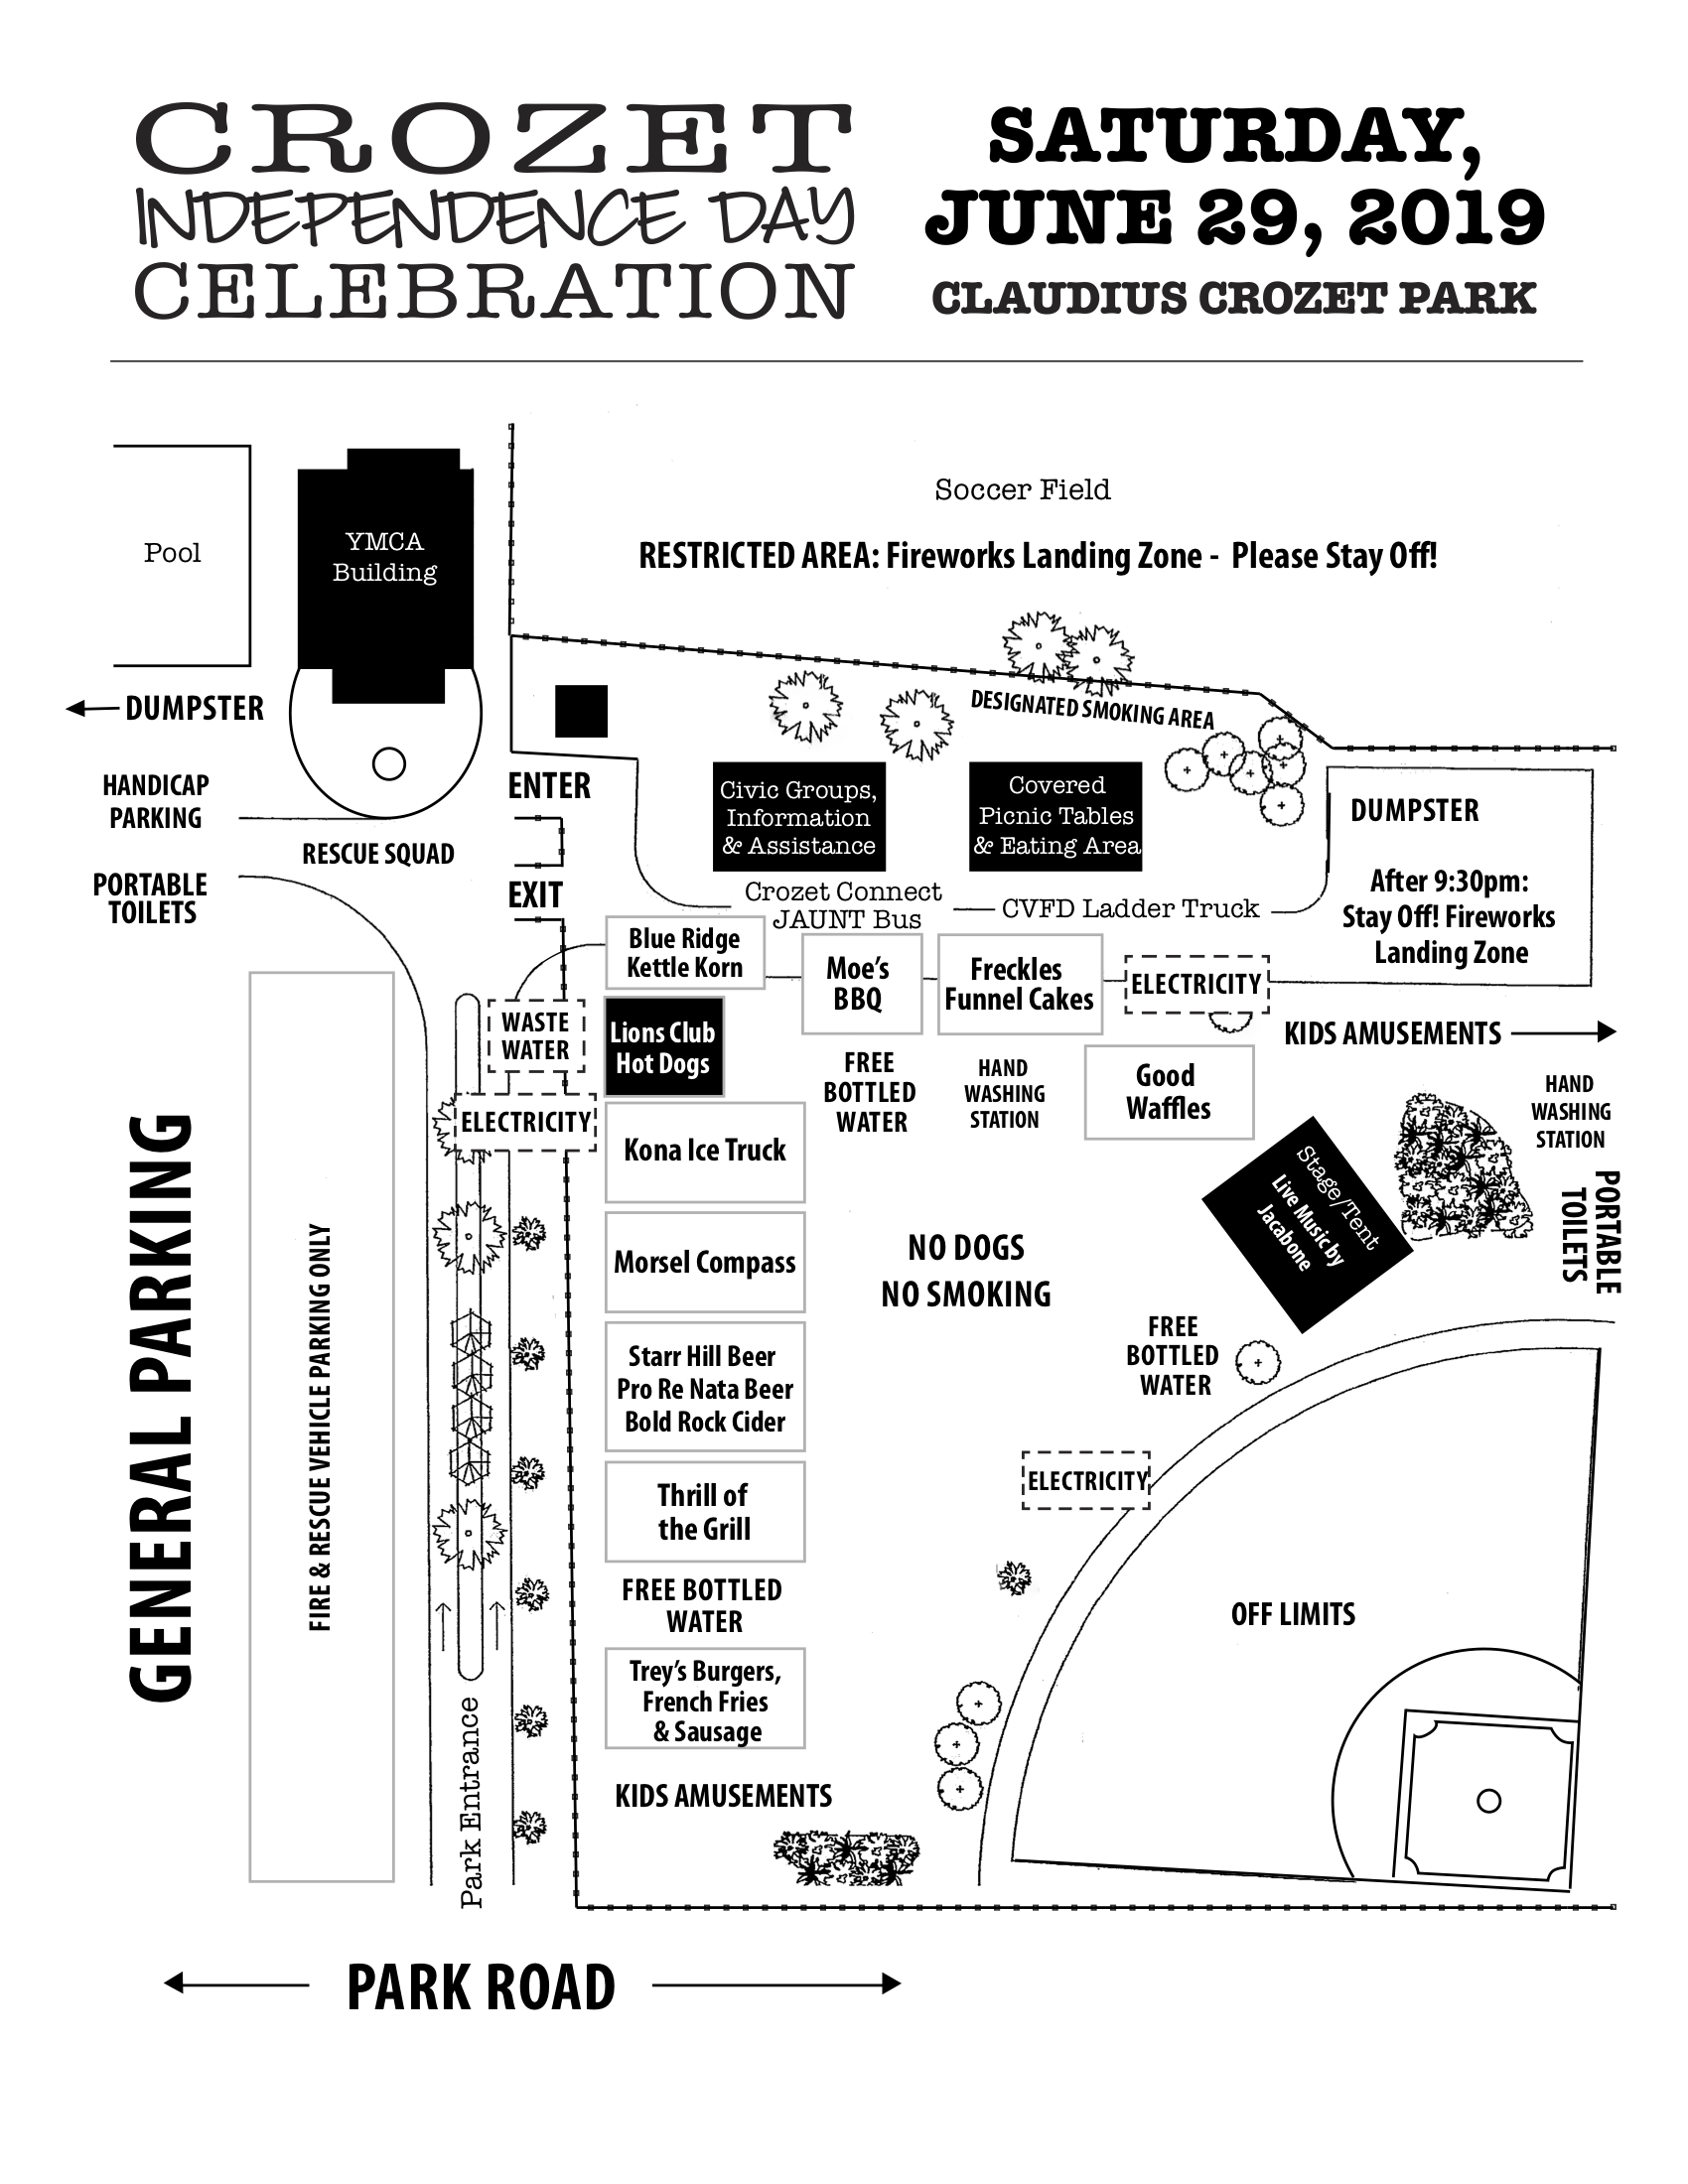 Map for the Crozet Independence Day Celebration at Crozet Park June 29, 2019